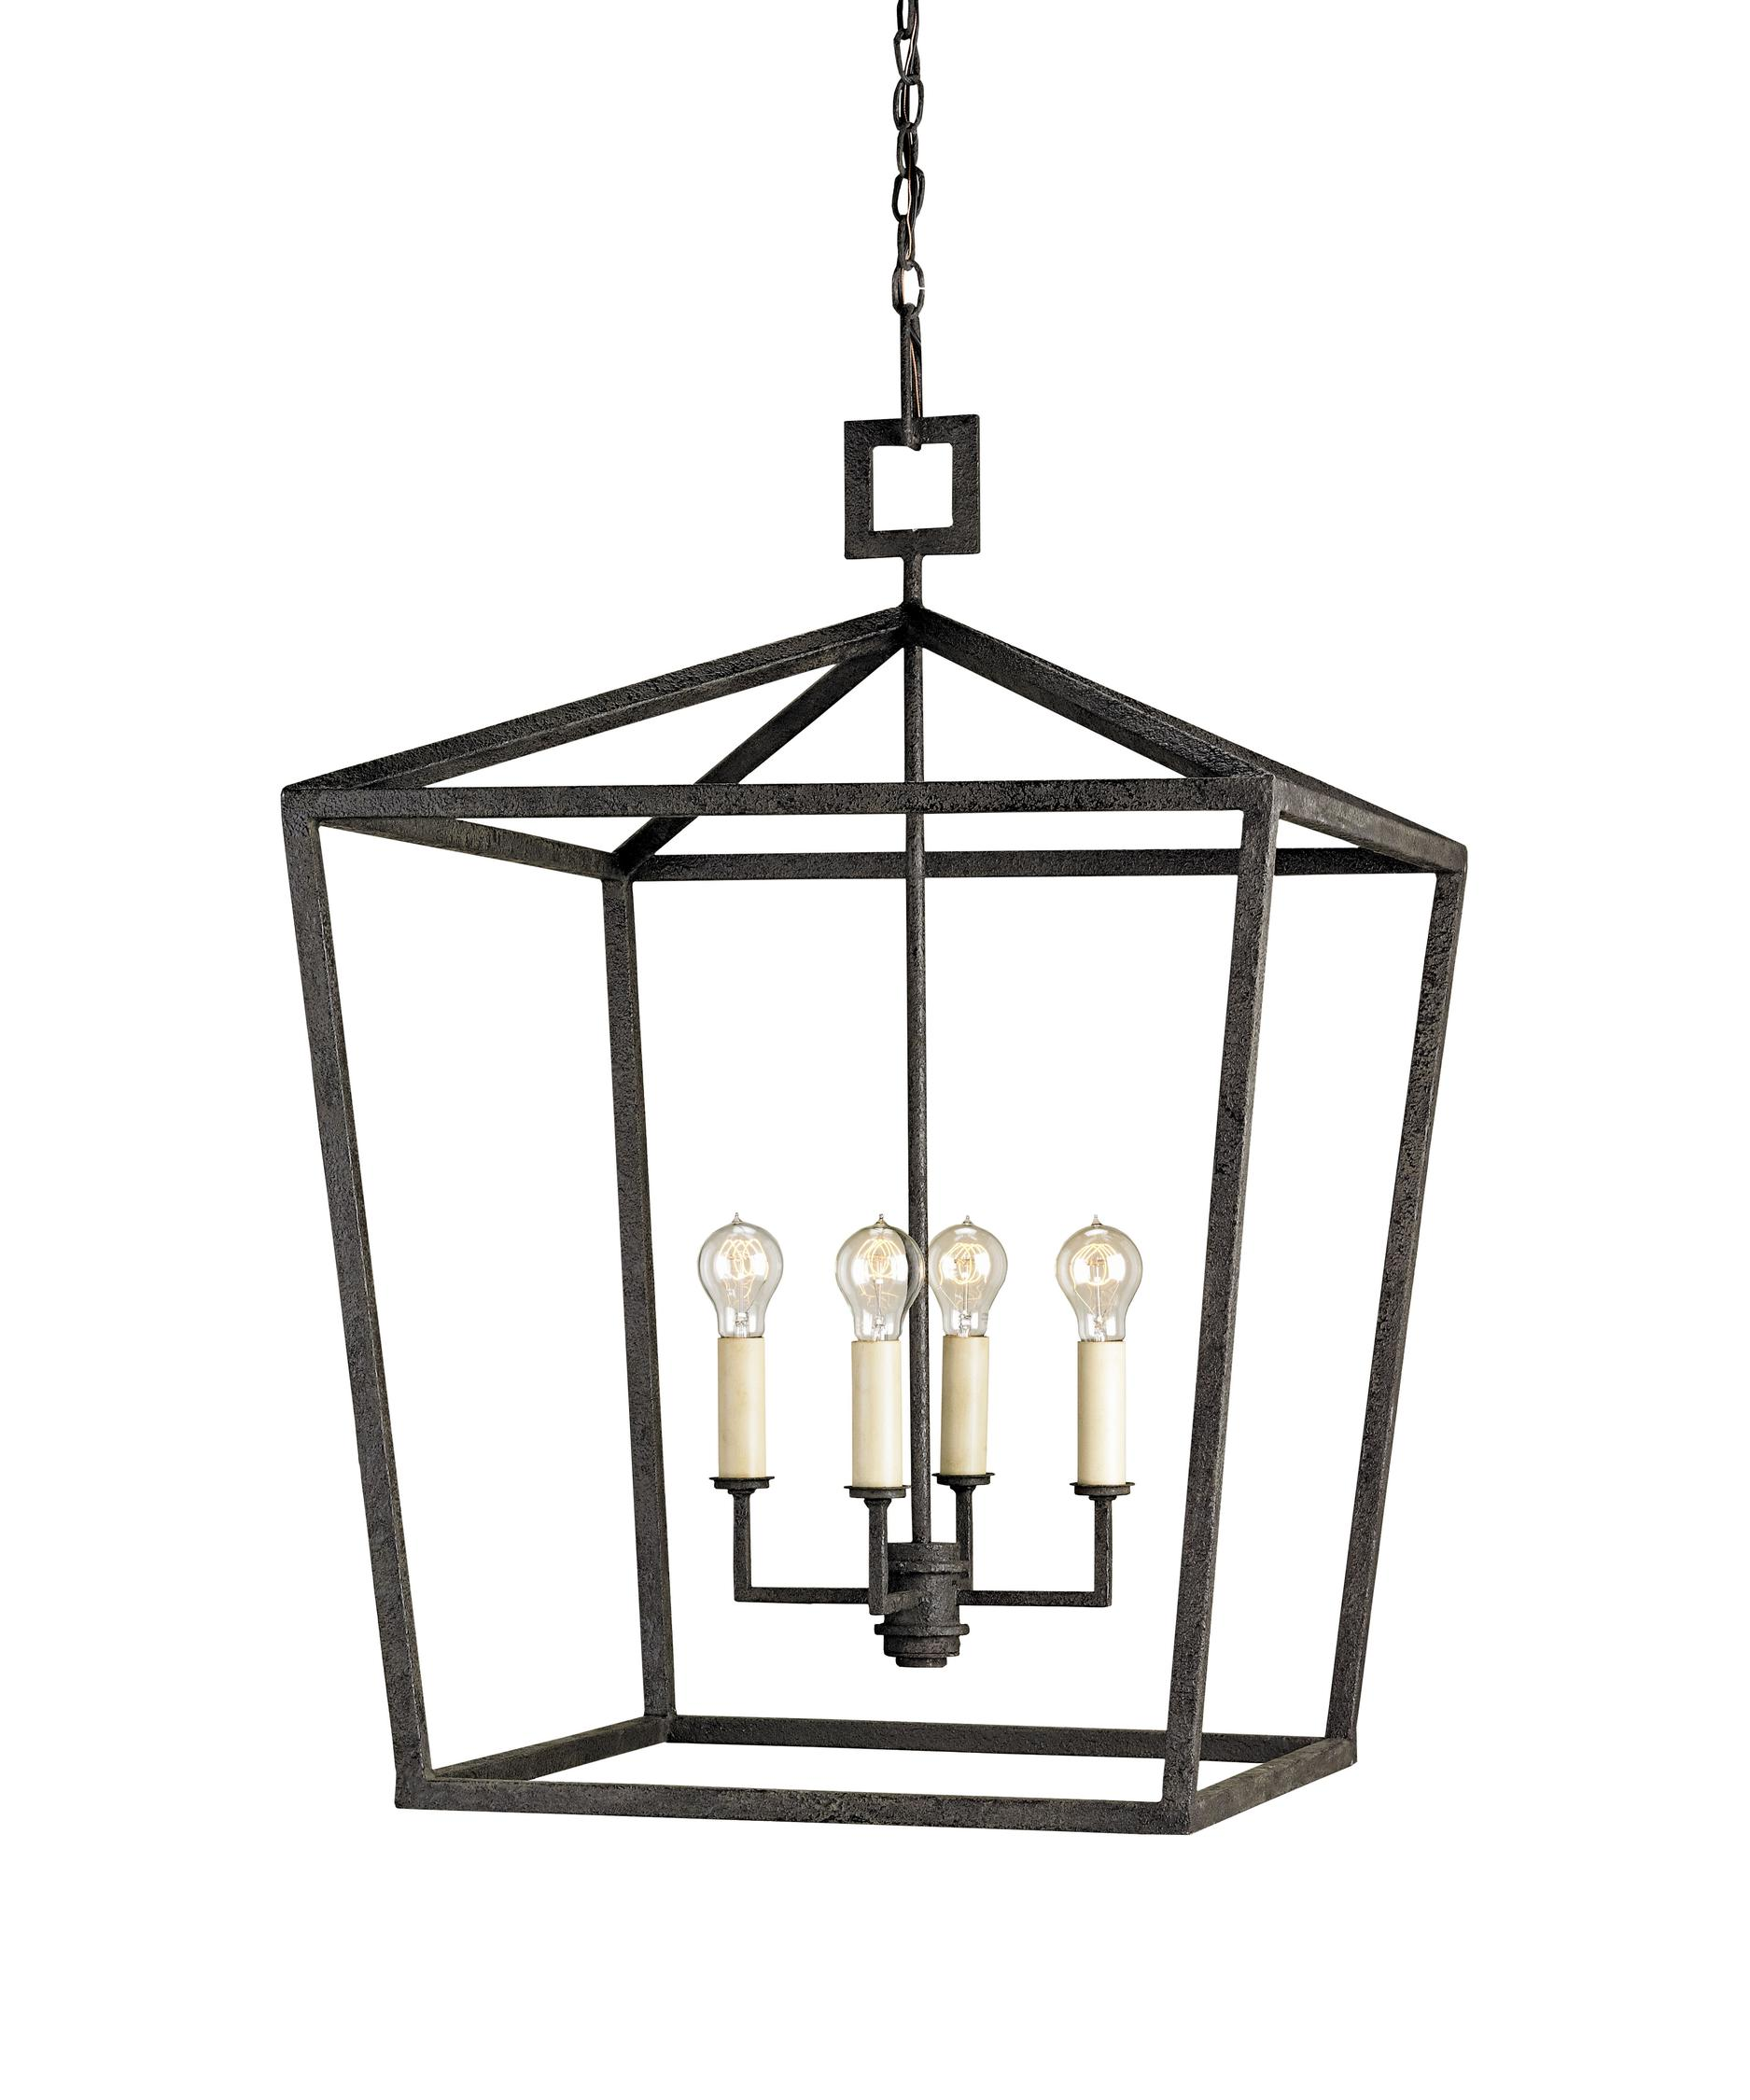 currey and company lighting fixtures. shown in mole black finish currey and company lighting fixtures capitol